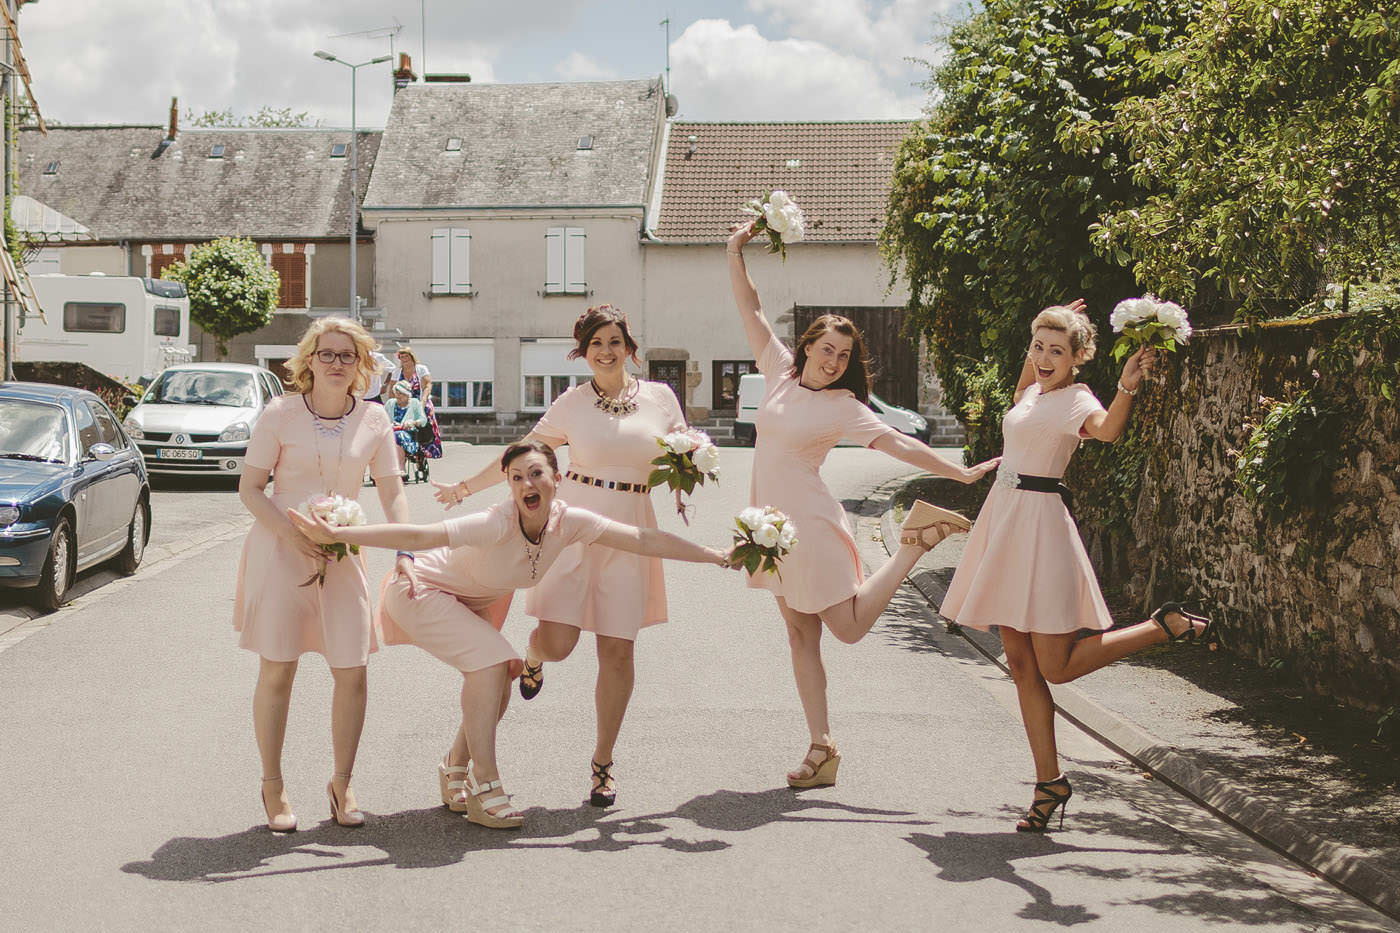 anthonytyler saint hillaire la treille france wedding photographer 0067